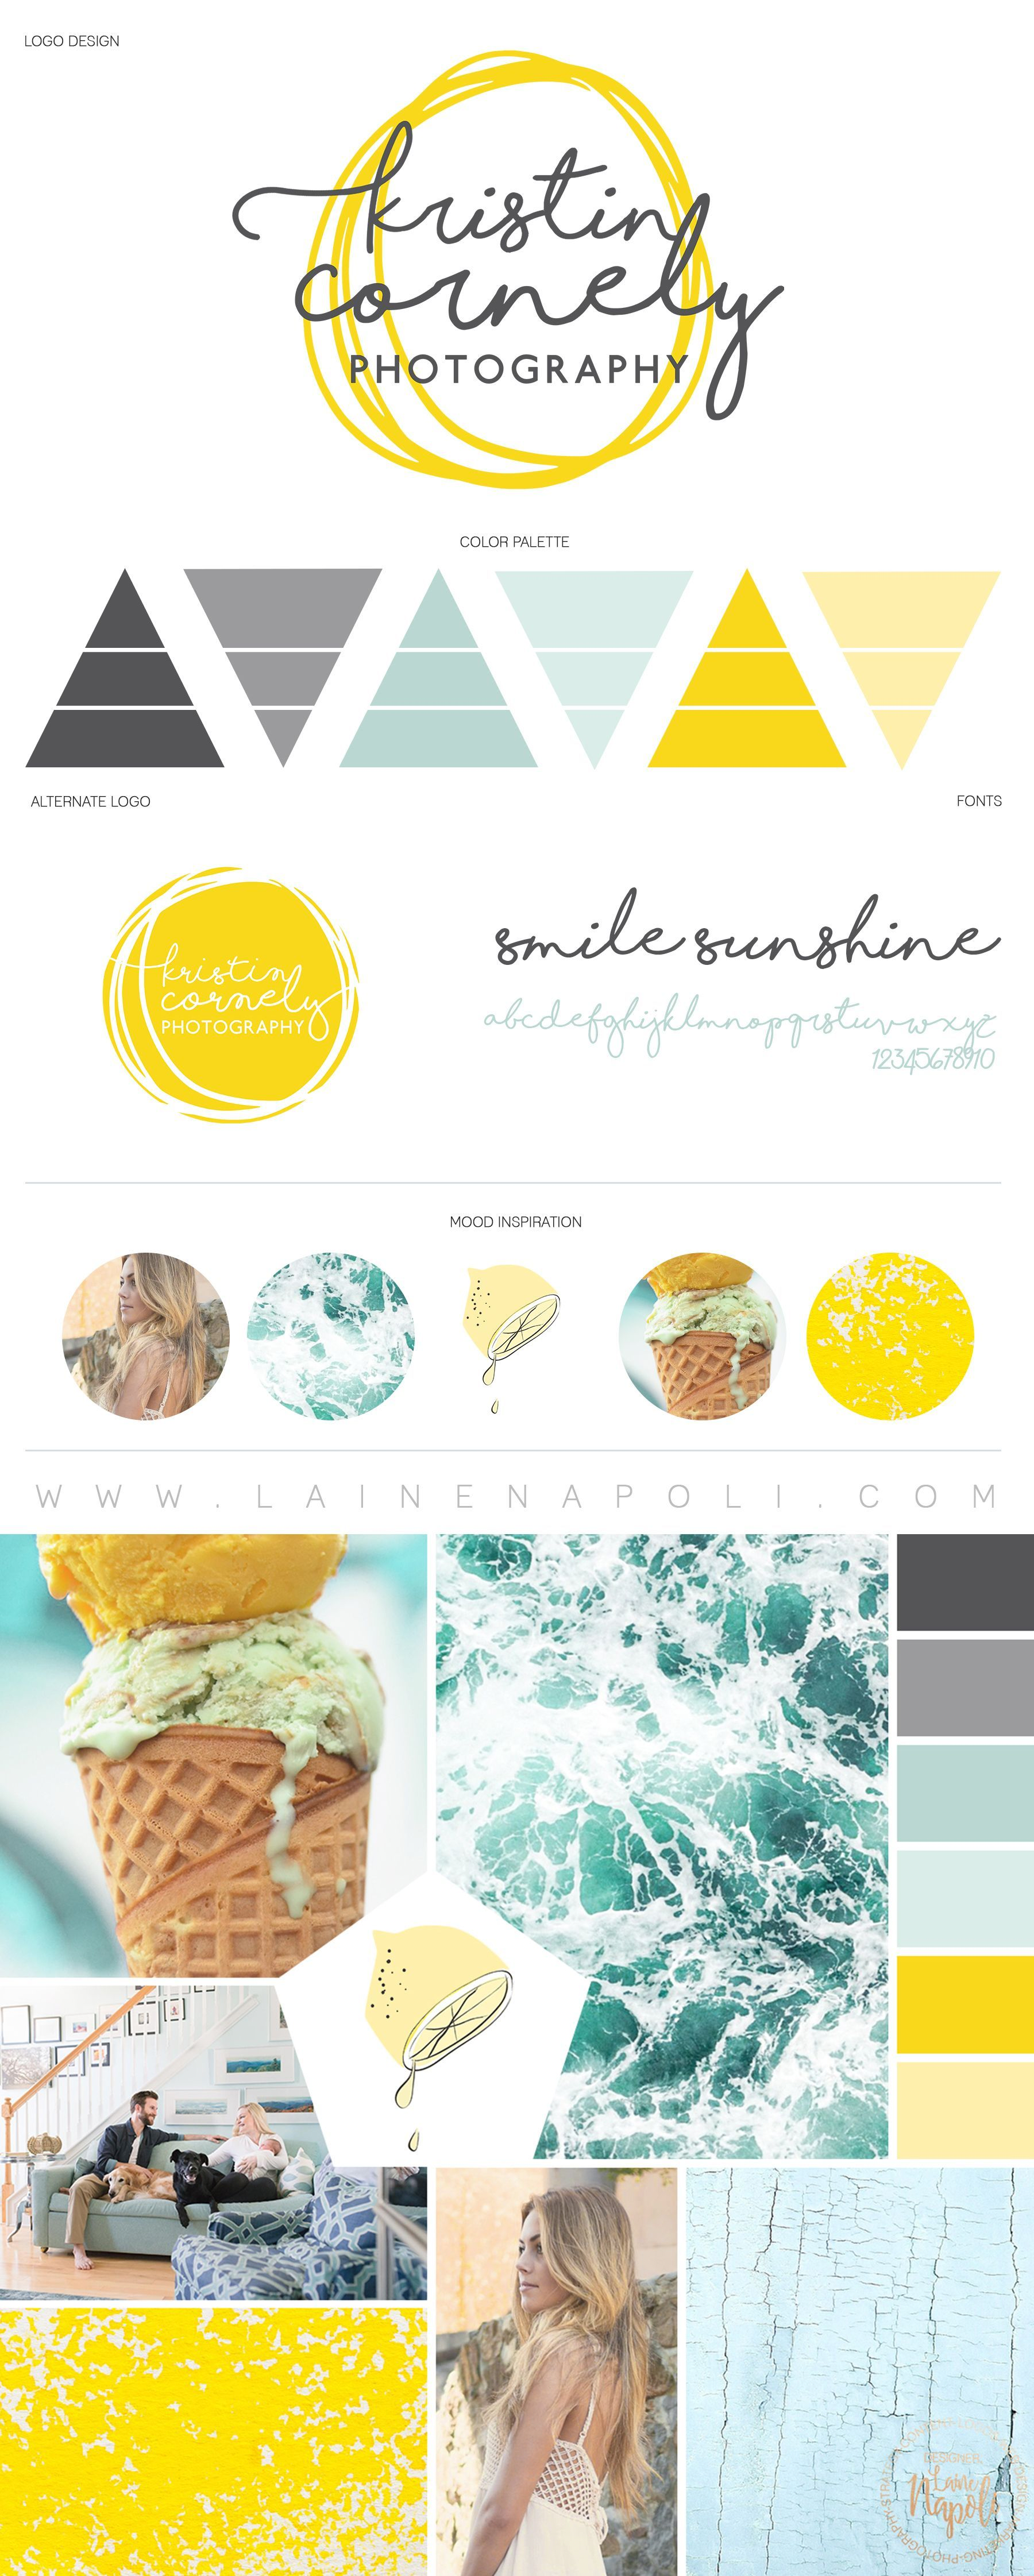 b219c635e81e New launch from the Branding Studio. Kristin Cornely Photography. Sunshine  Yellow, Grey, Light Blue, mood board with a touch of pure hapiness. Logo  Design.